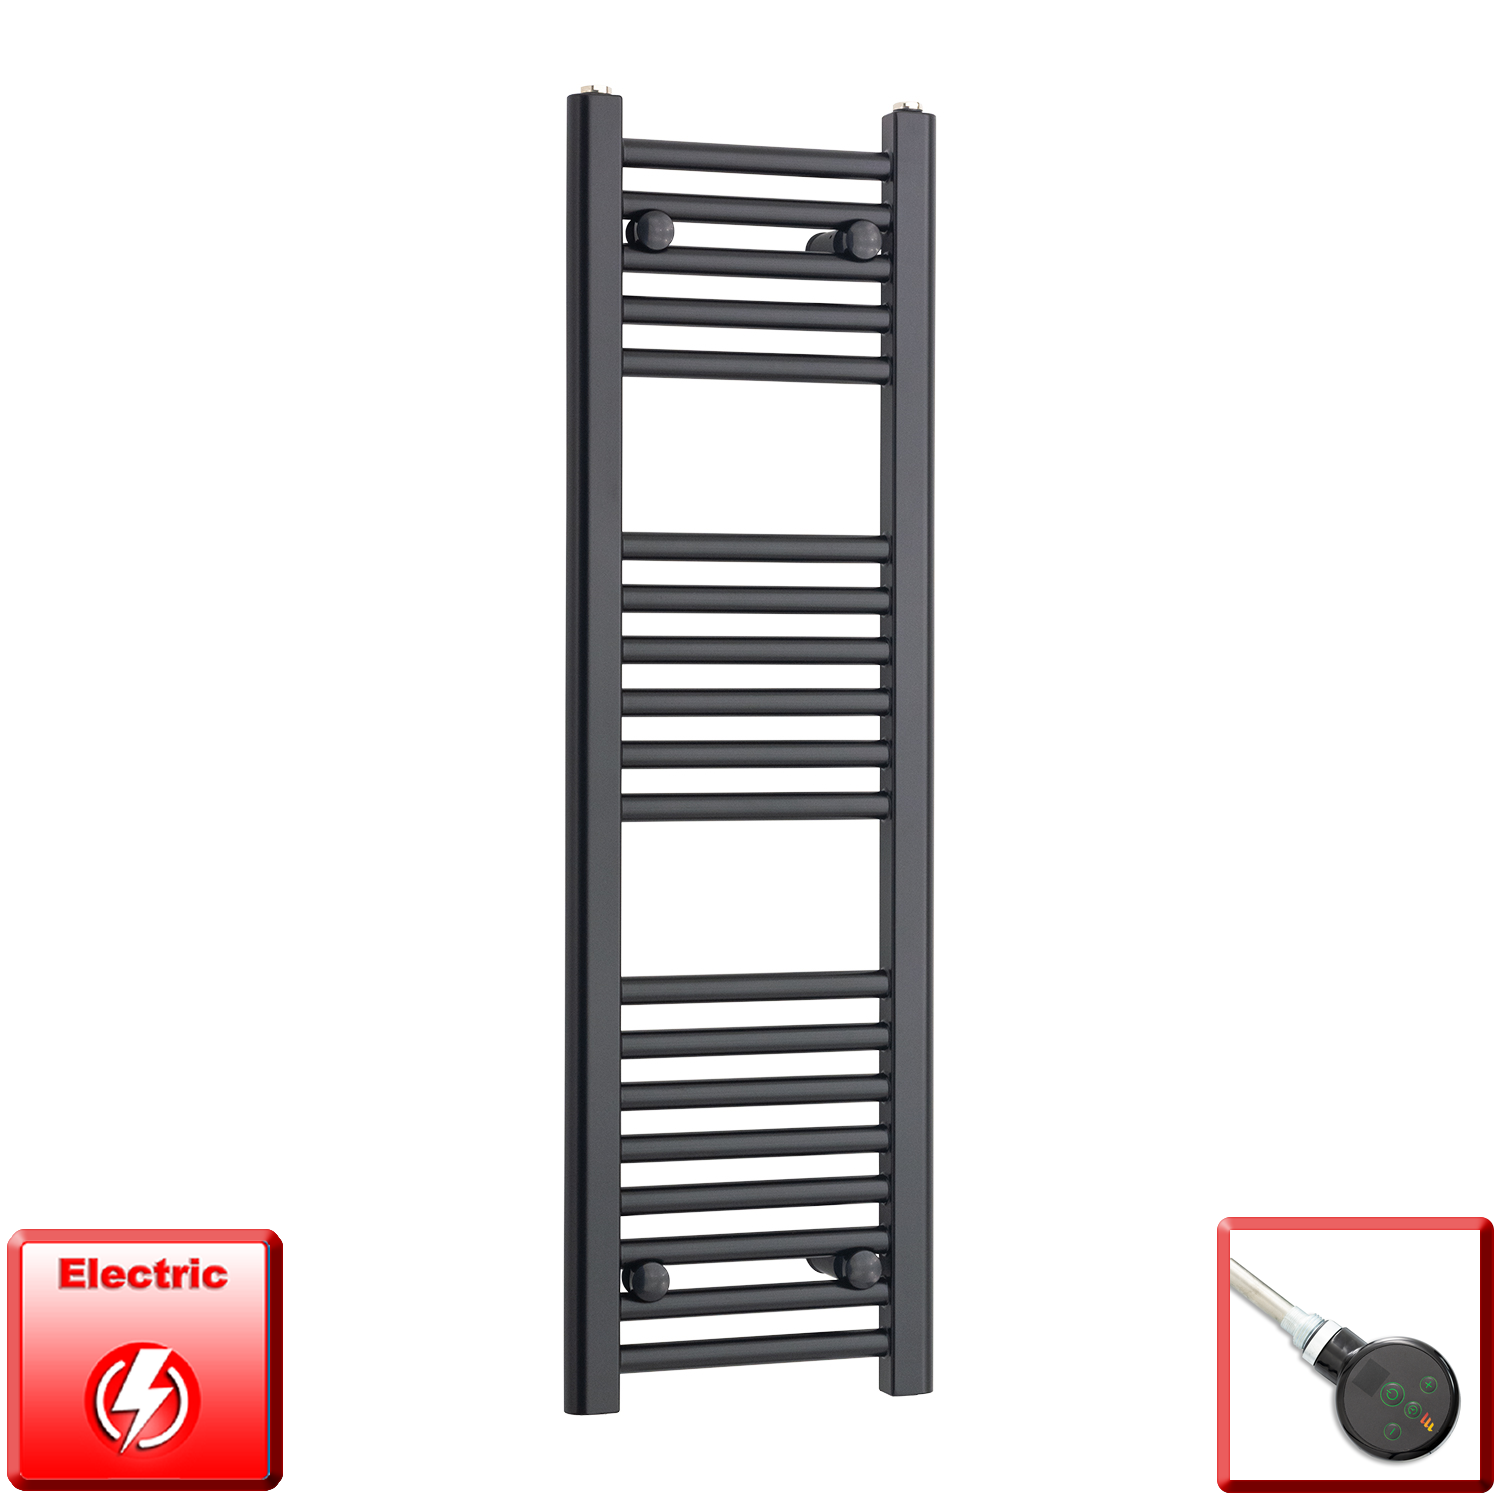 300mm Wide 1000mm High Flat Black Pre-Filled Electric Heated Towel Rail Radiator HTR,DIGIThermostatic